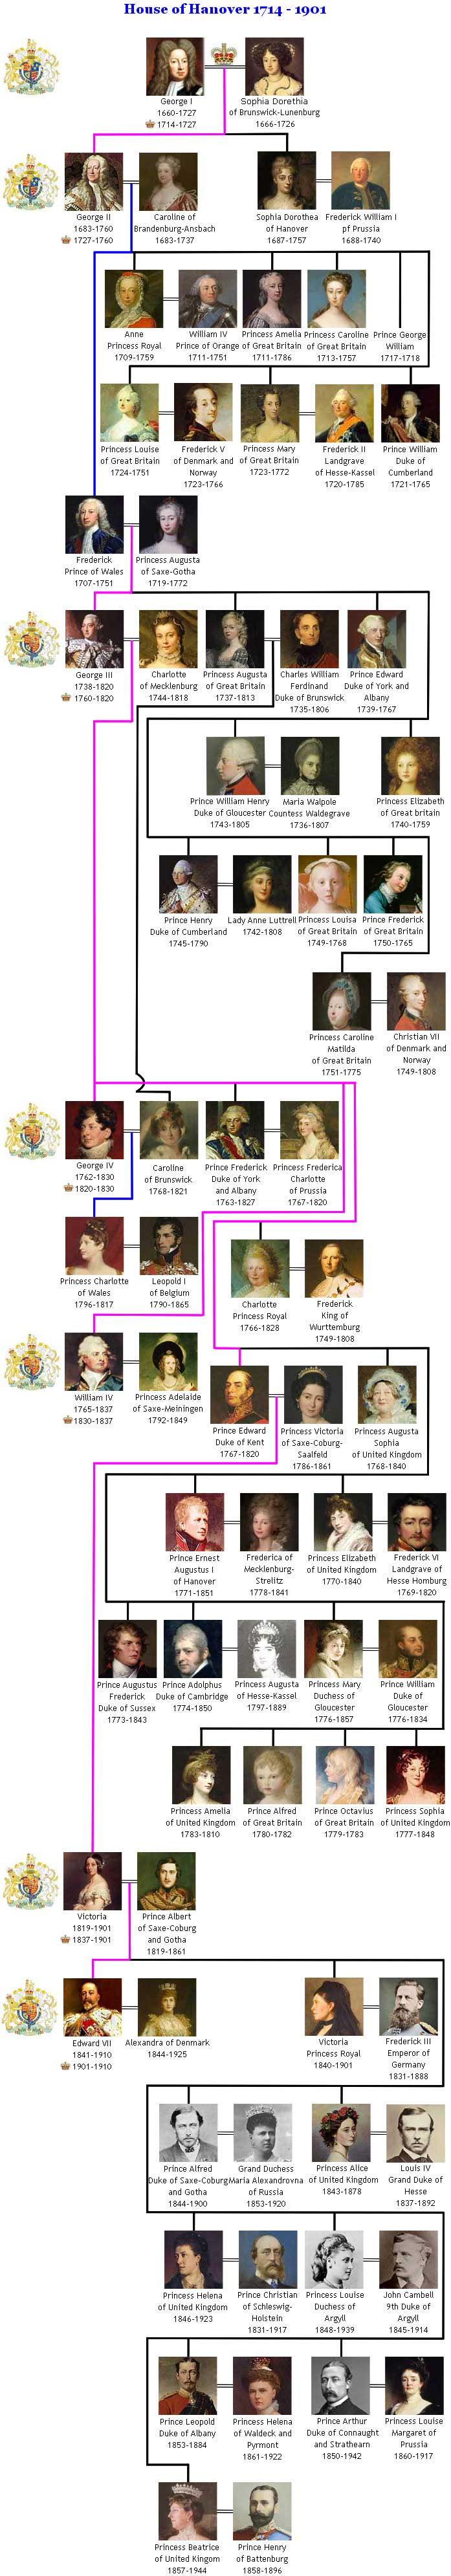 House of Hanover Royal Family Tree